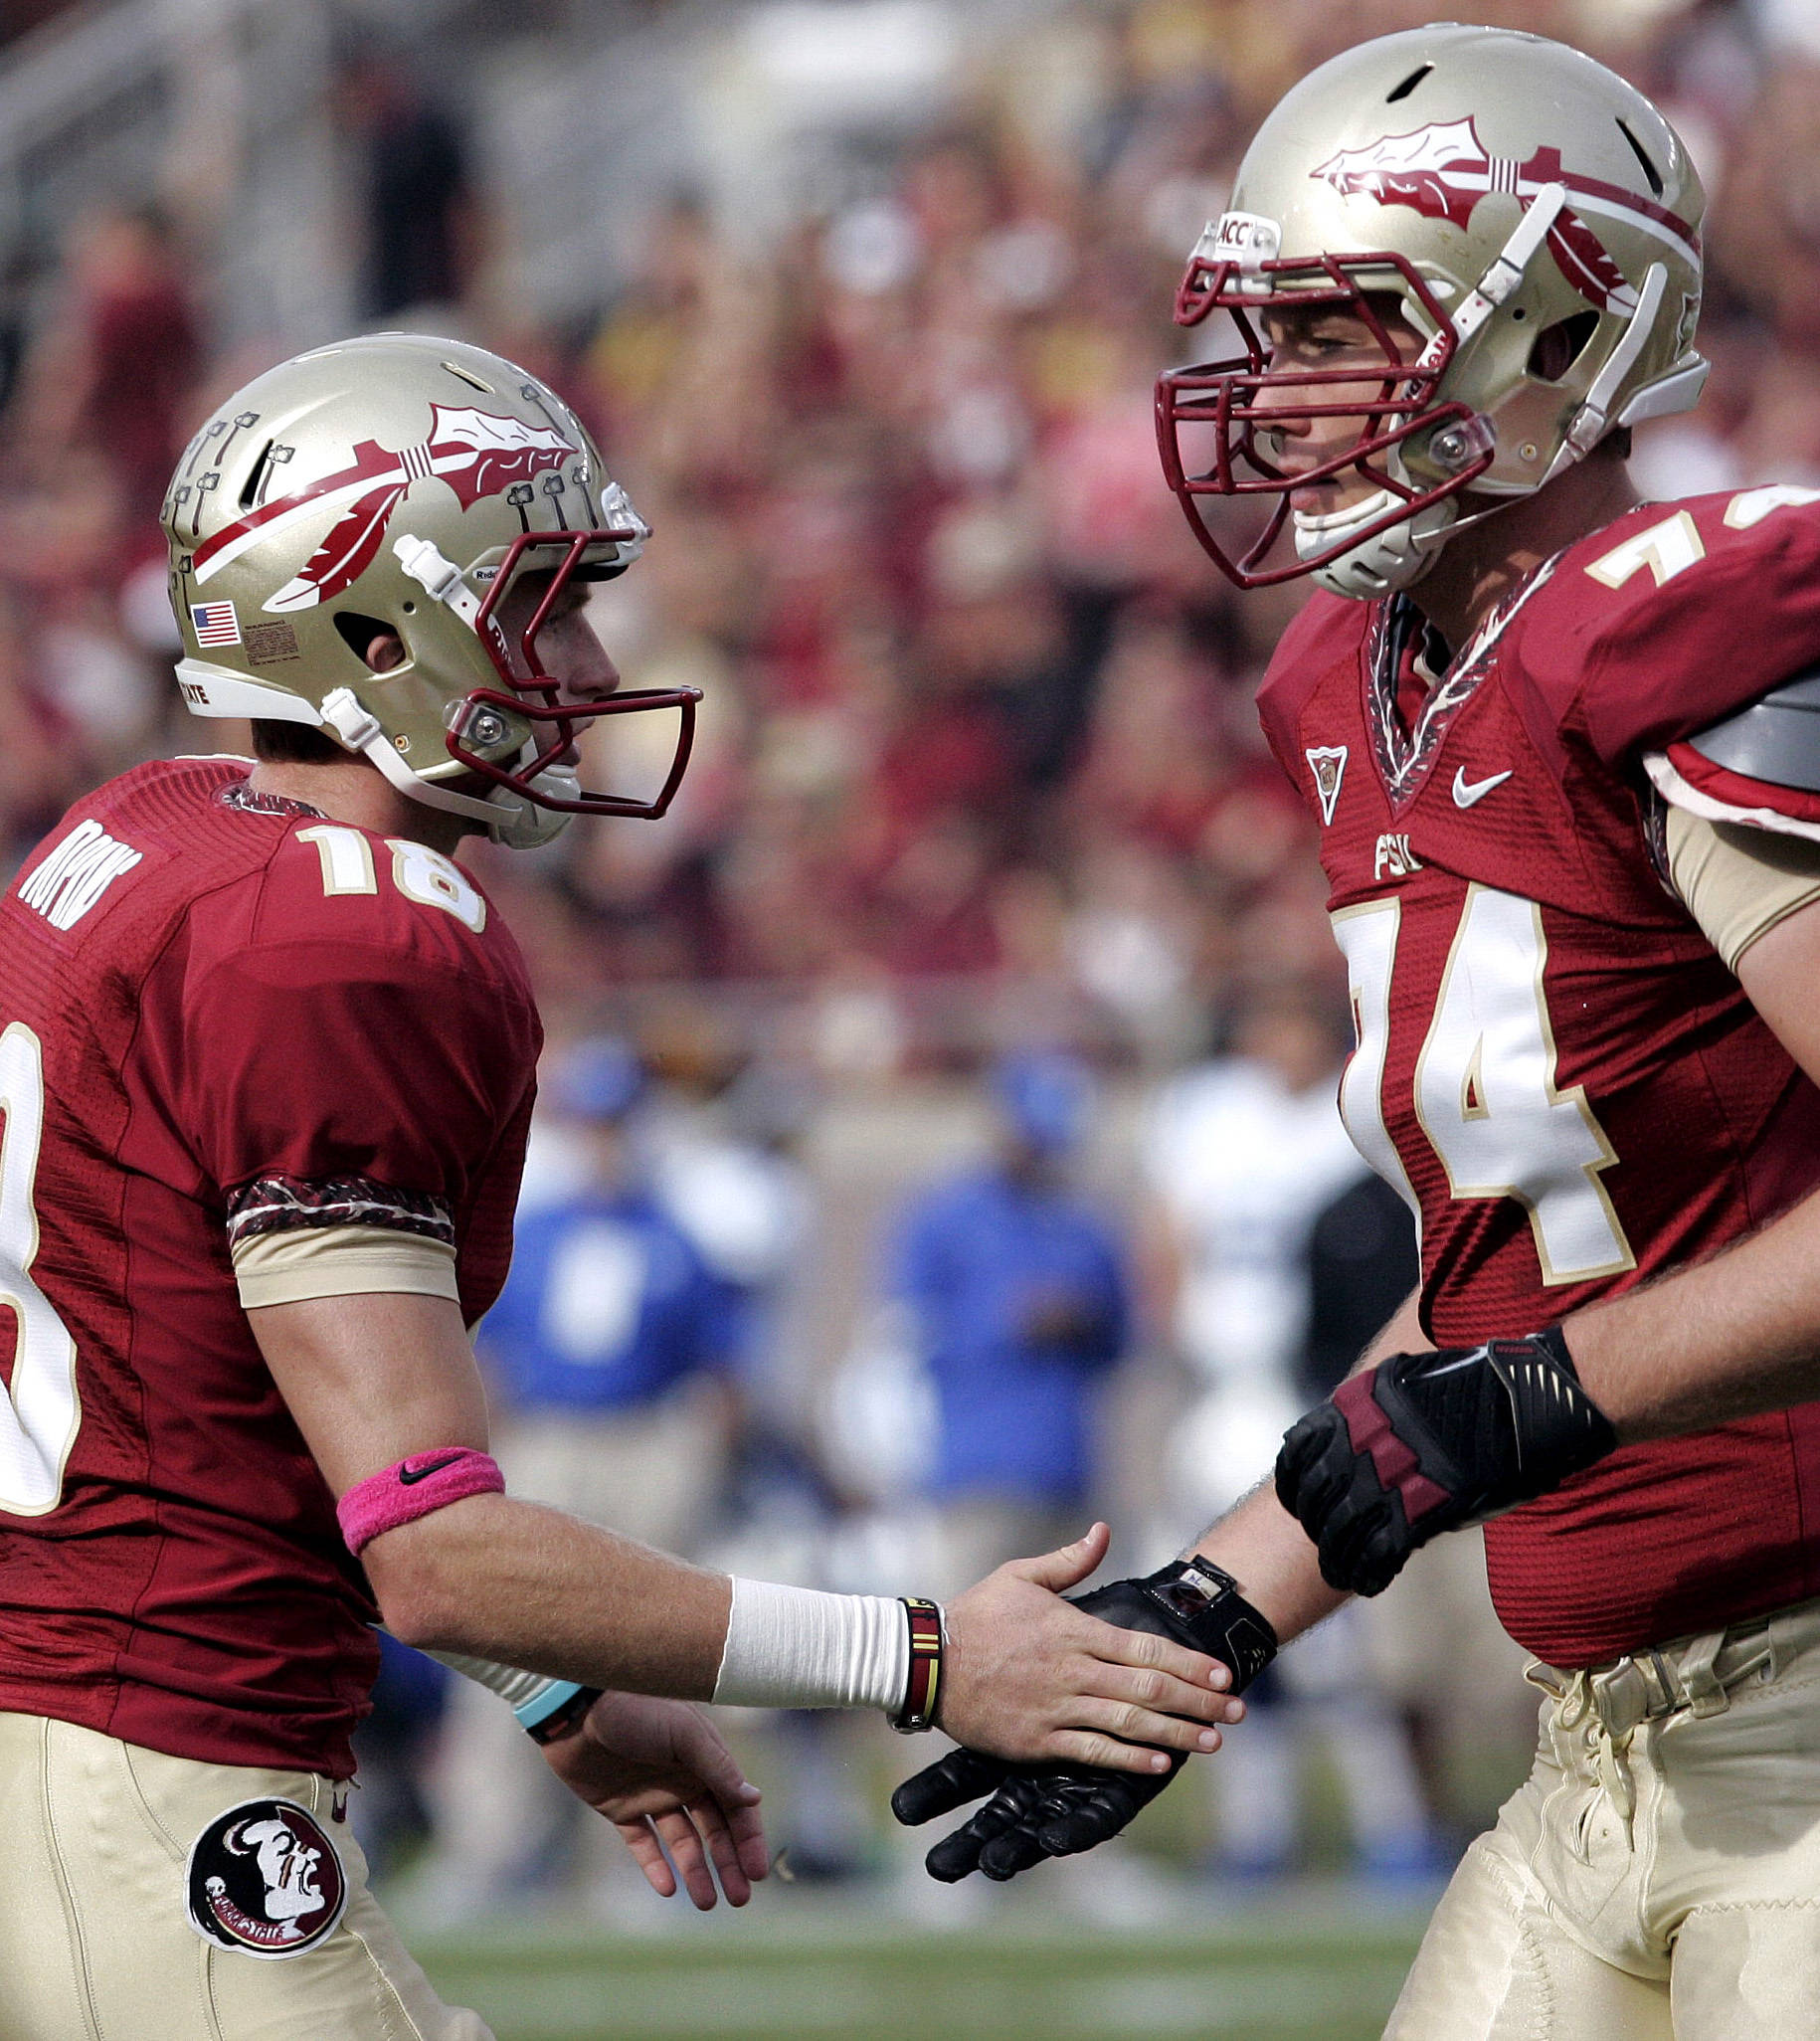 Florida State's Dustin Hopkins, left, is congratulated by teammate Jonathan Wallace after kicking a field goal against Duke in the first quarter. (AP Photo/Steve Cannon)